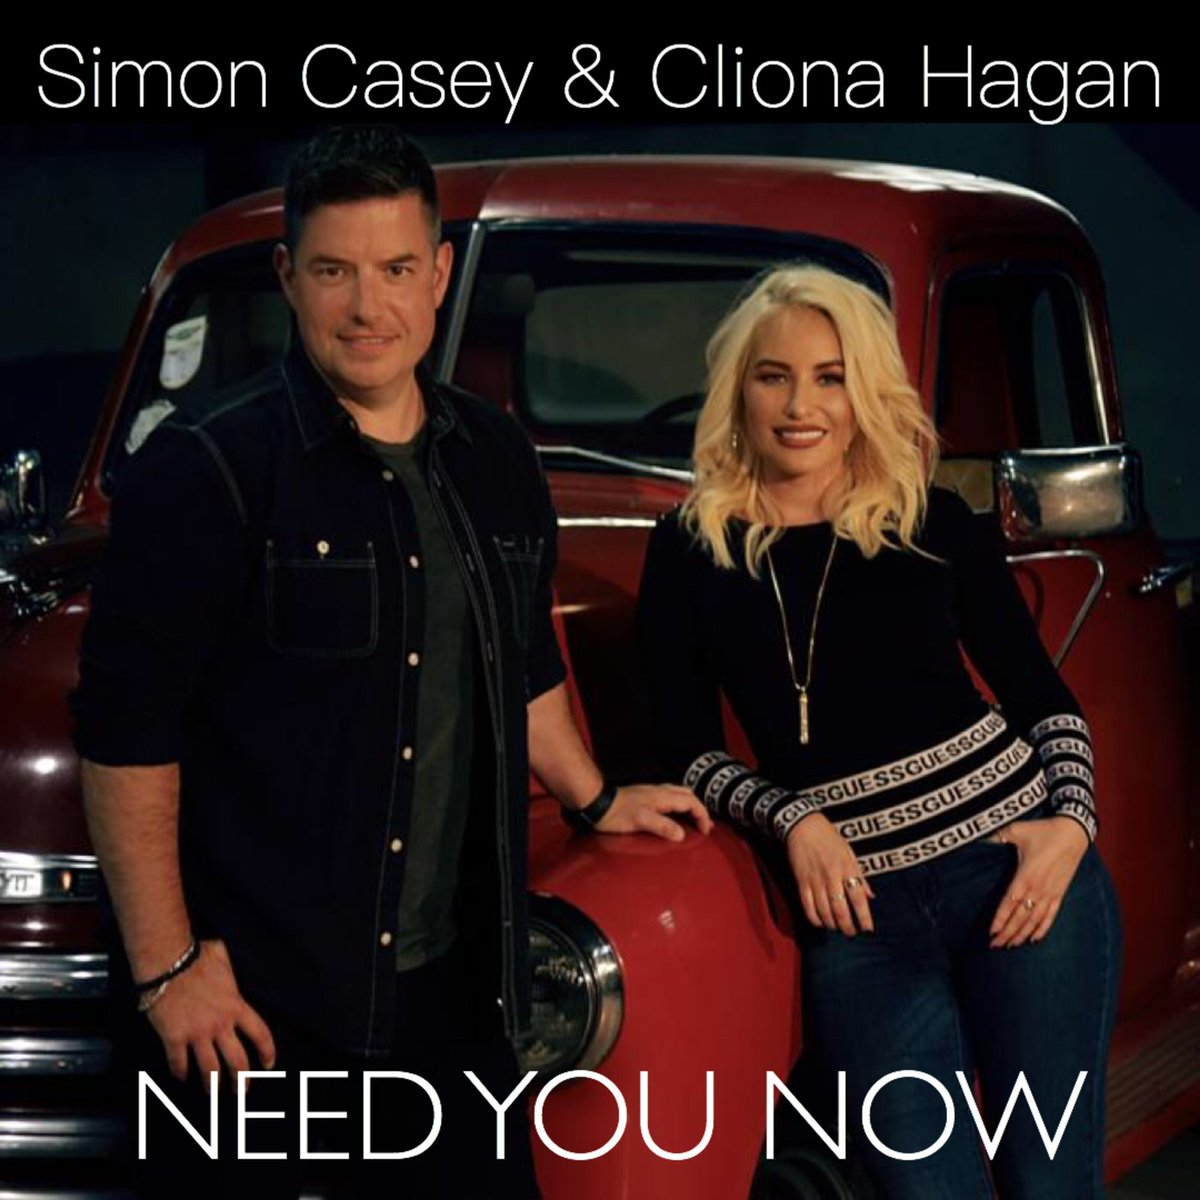 🔥 New Single🔥 'Need You Now' Available to request on All radio stations NOW 💓 https://t.co/AmPp2AhH95